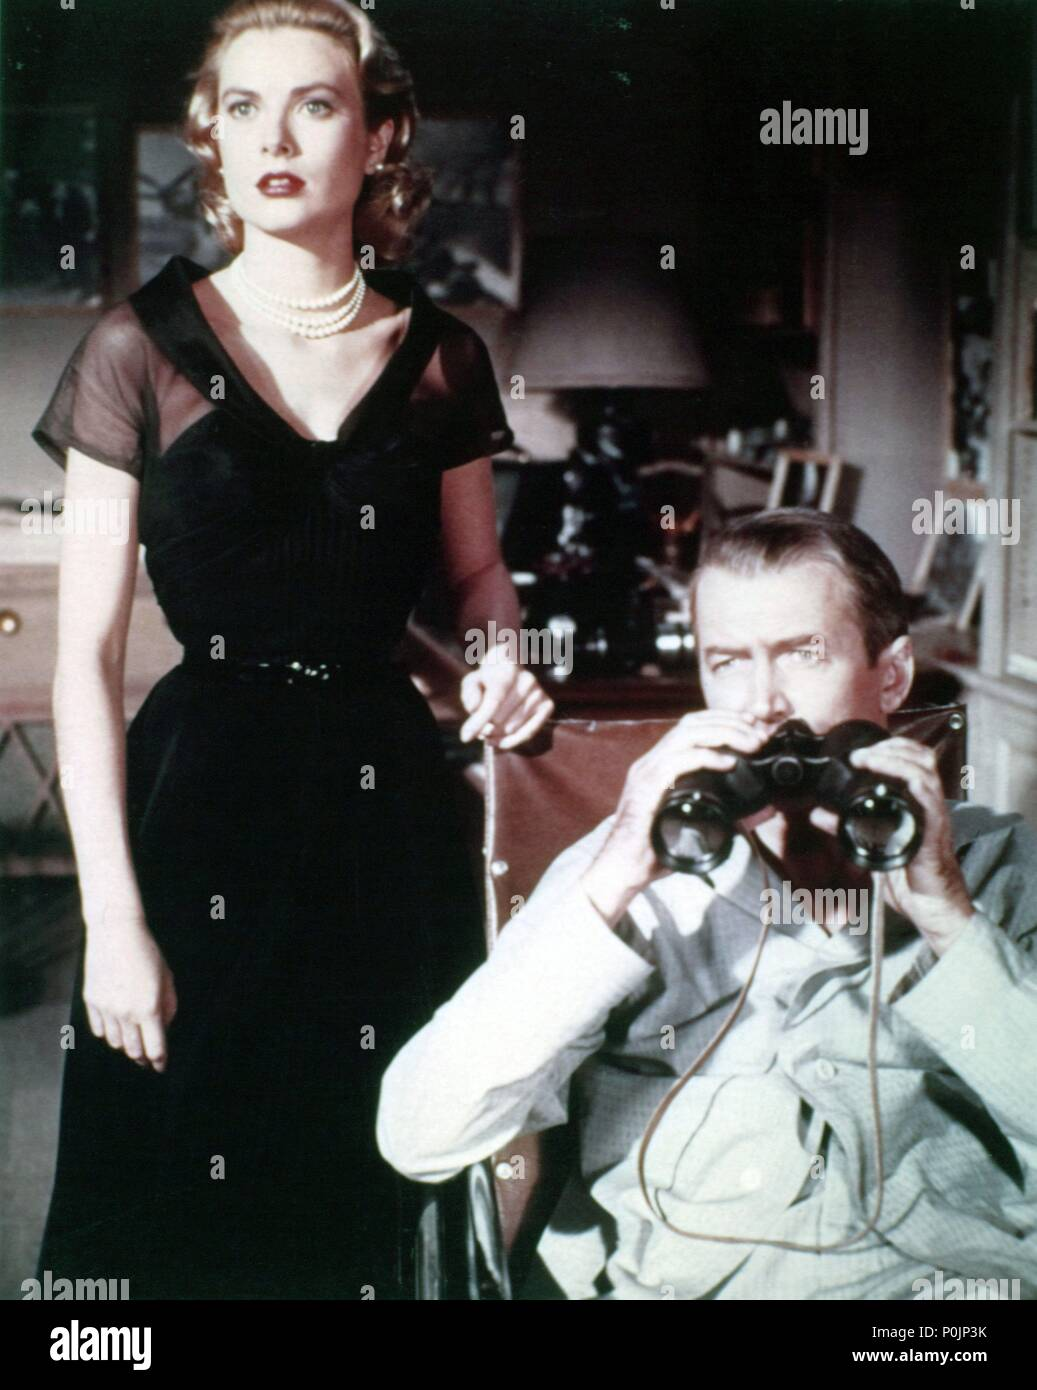 Original Film Title: REAR WINDOW.  English Title: REAR WINDOW.  Film Director: ALFRED HITCHCOCK.  Year: 1954.  Stars: JAMES STEWART; GRACE KELLY. Credit: PARAMOUNT PICTURES / Album - Stock Image